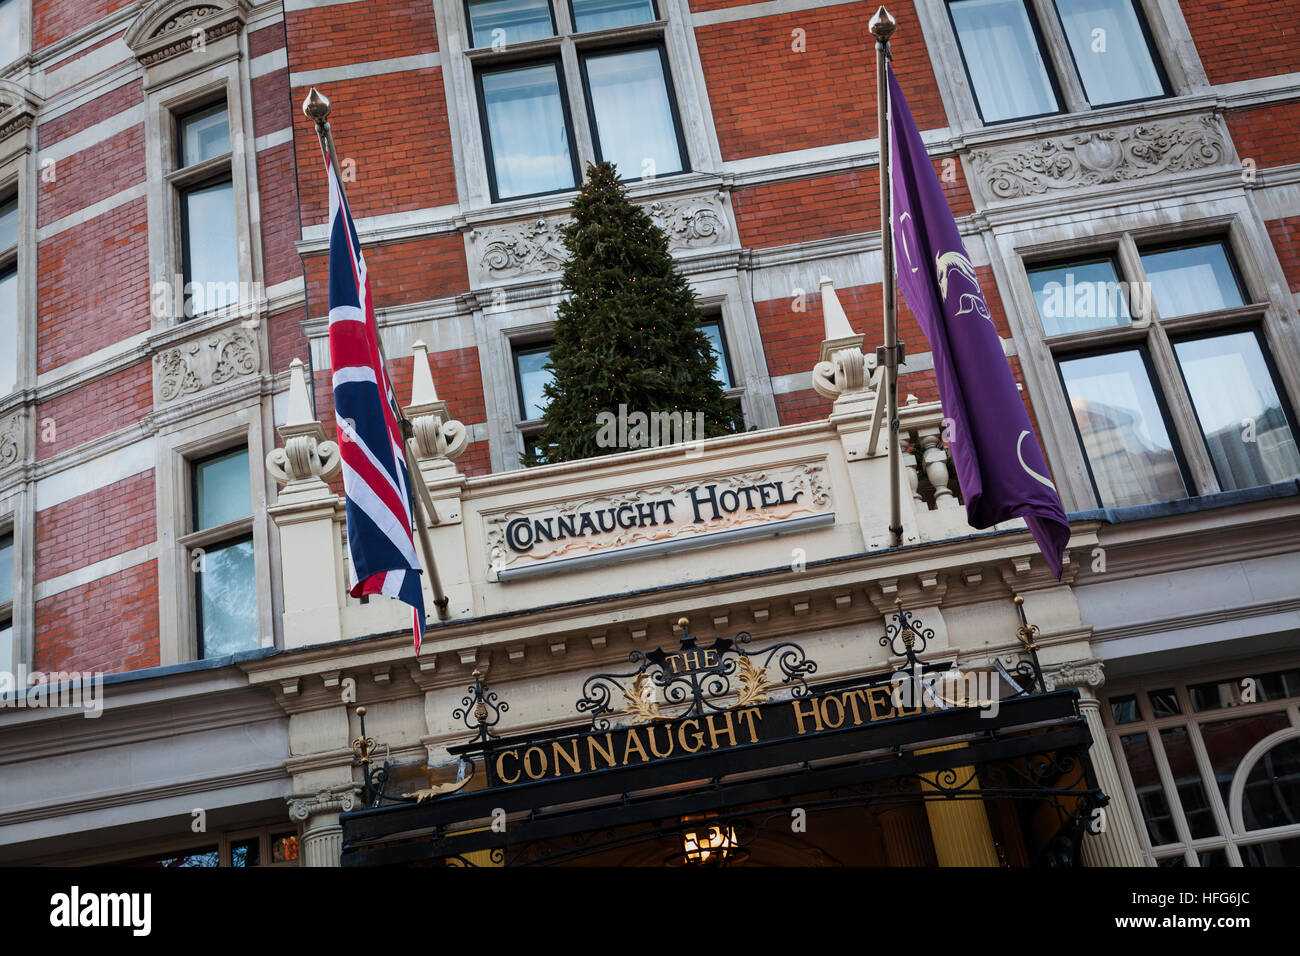 The Connaught Hotel Mayfair - Stock Image